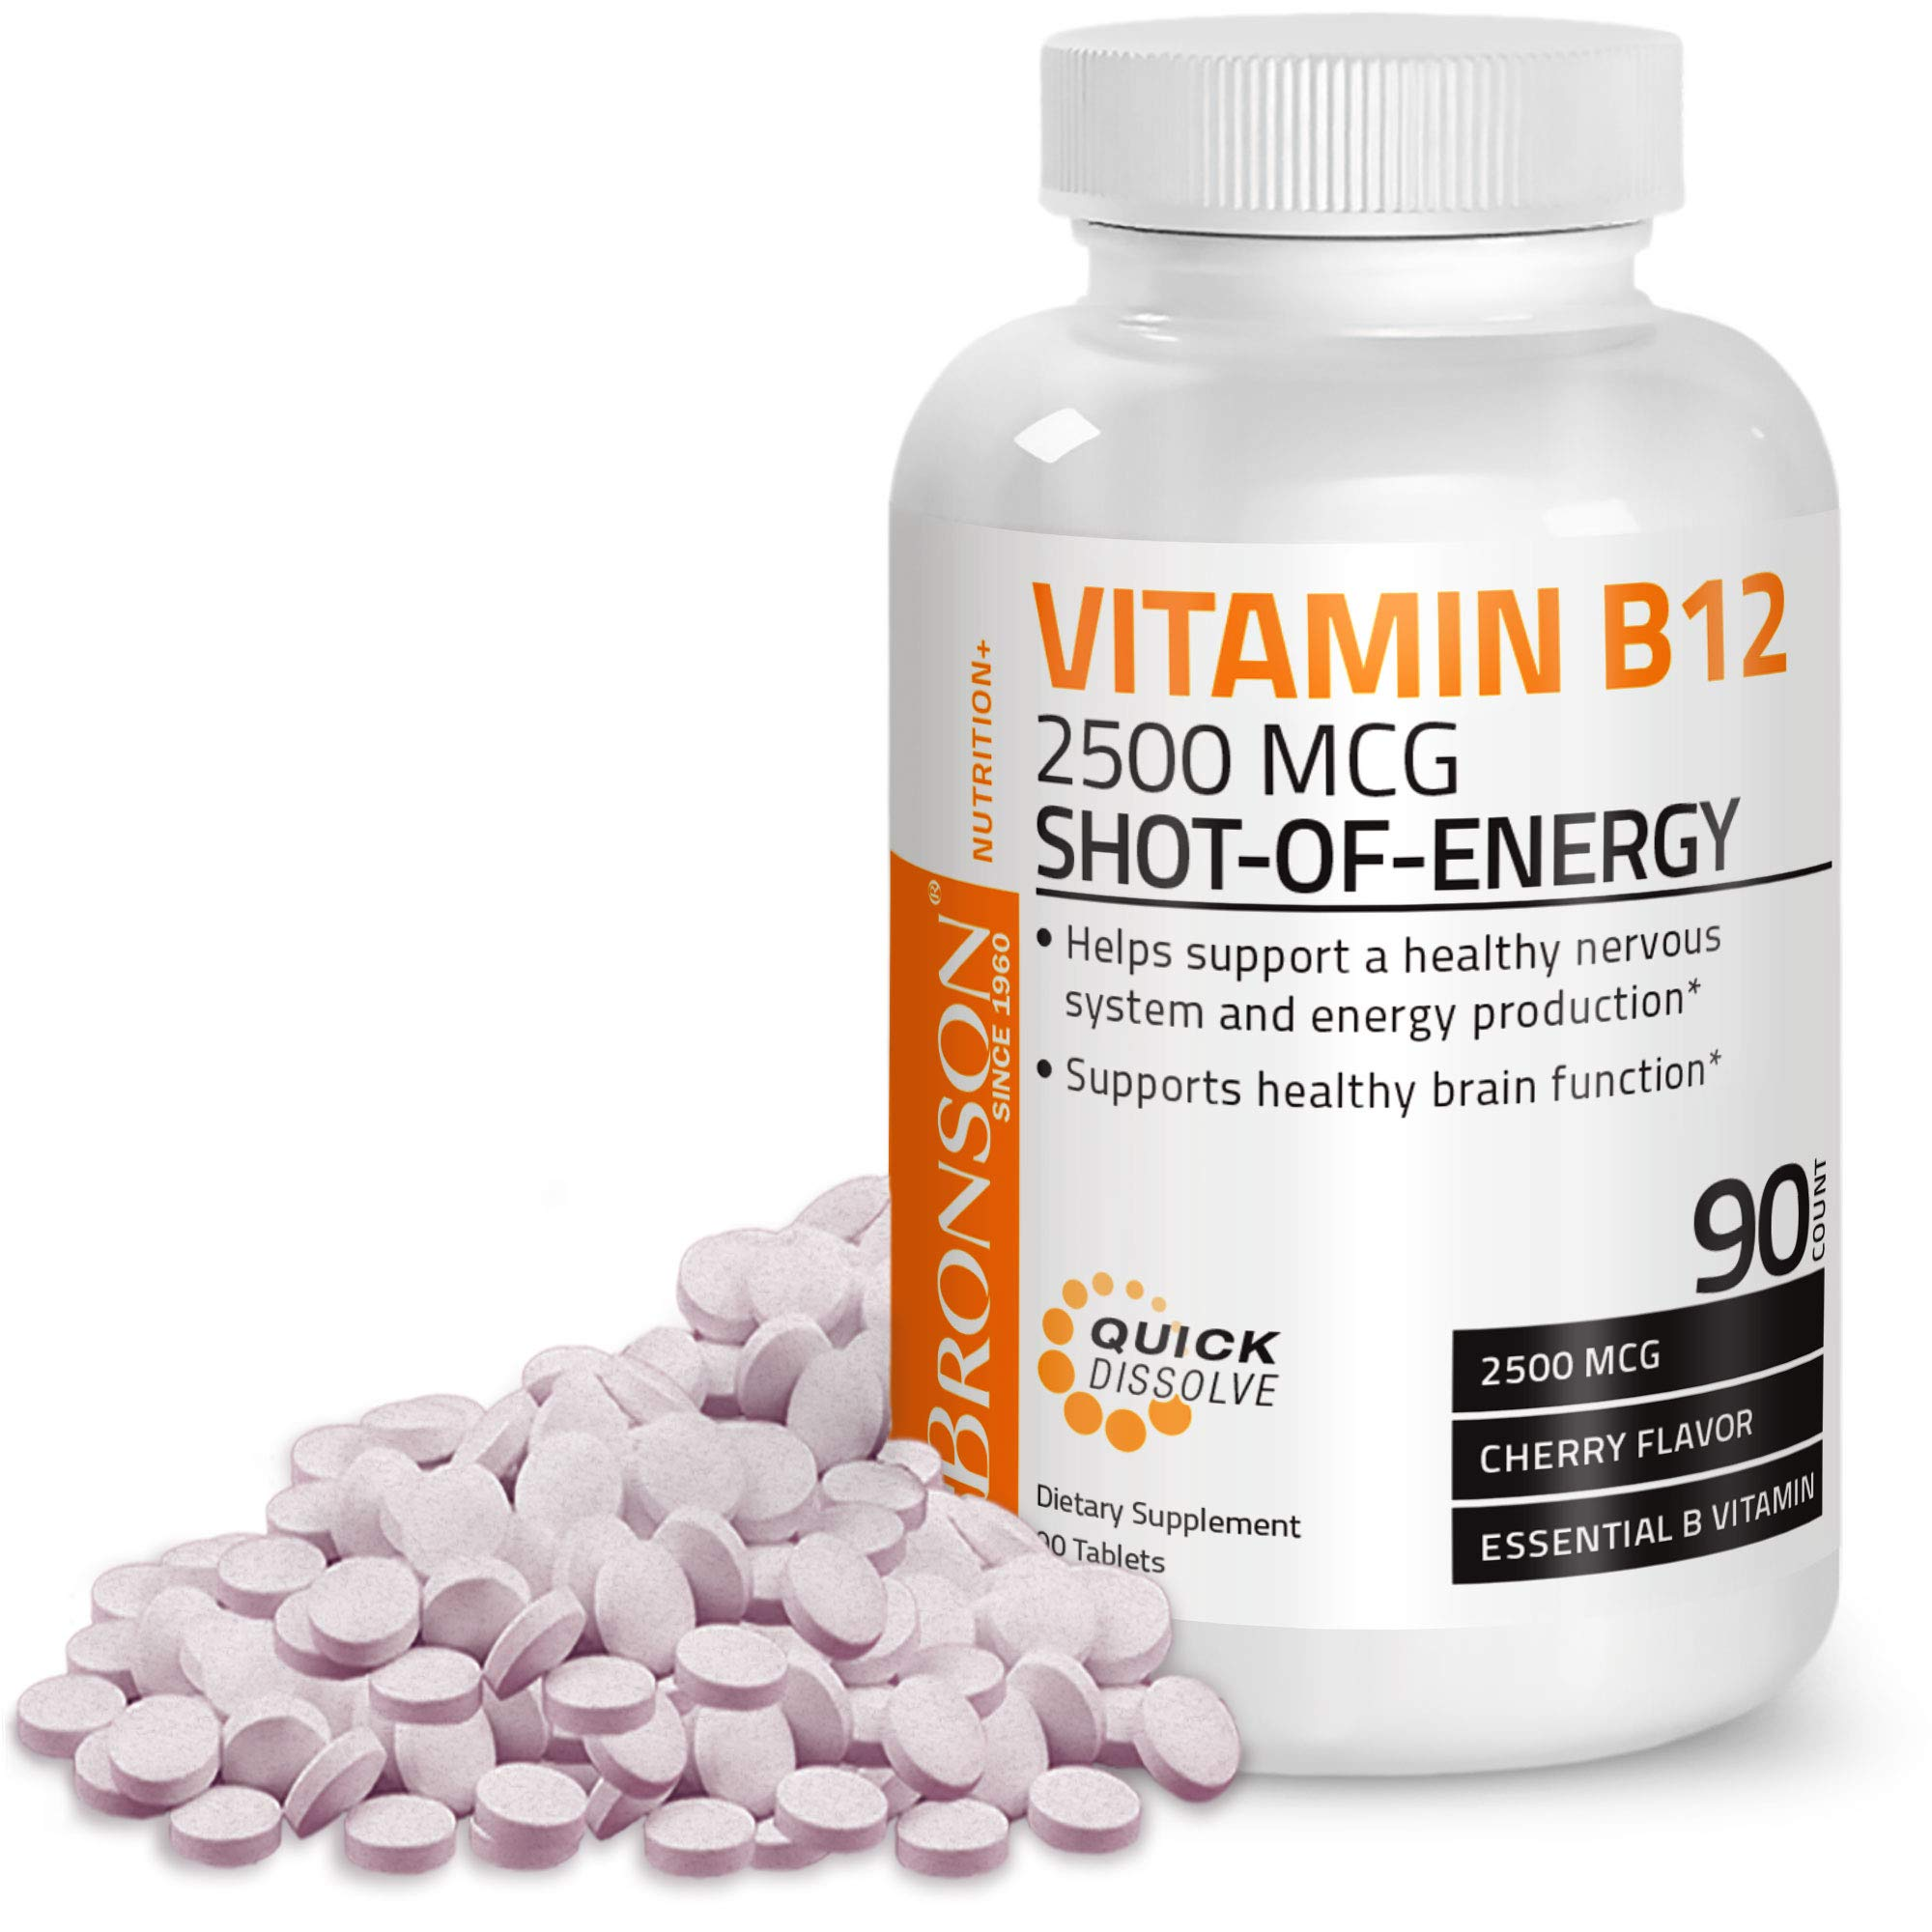 Vitamin B12 2500mcg Shot of Energy Fast Dissolve Chewable Tablets - Quick  Release Cherry Flavored Sublingual B12 Vitamin - Supports Nervous System,  Healthy Brain Function Energy Production – 90 Count- Buy Online